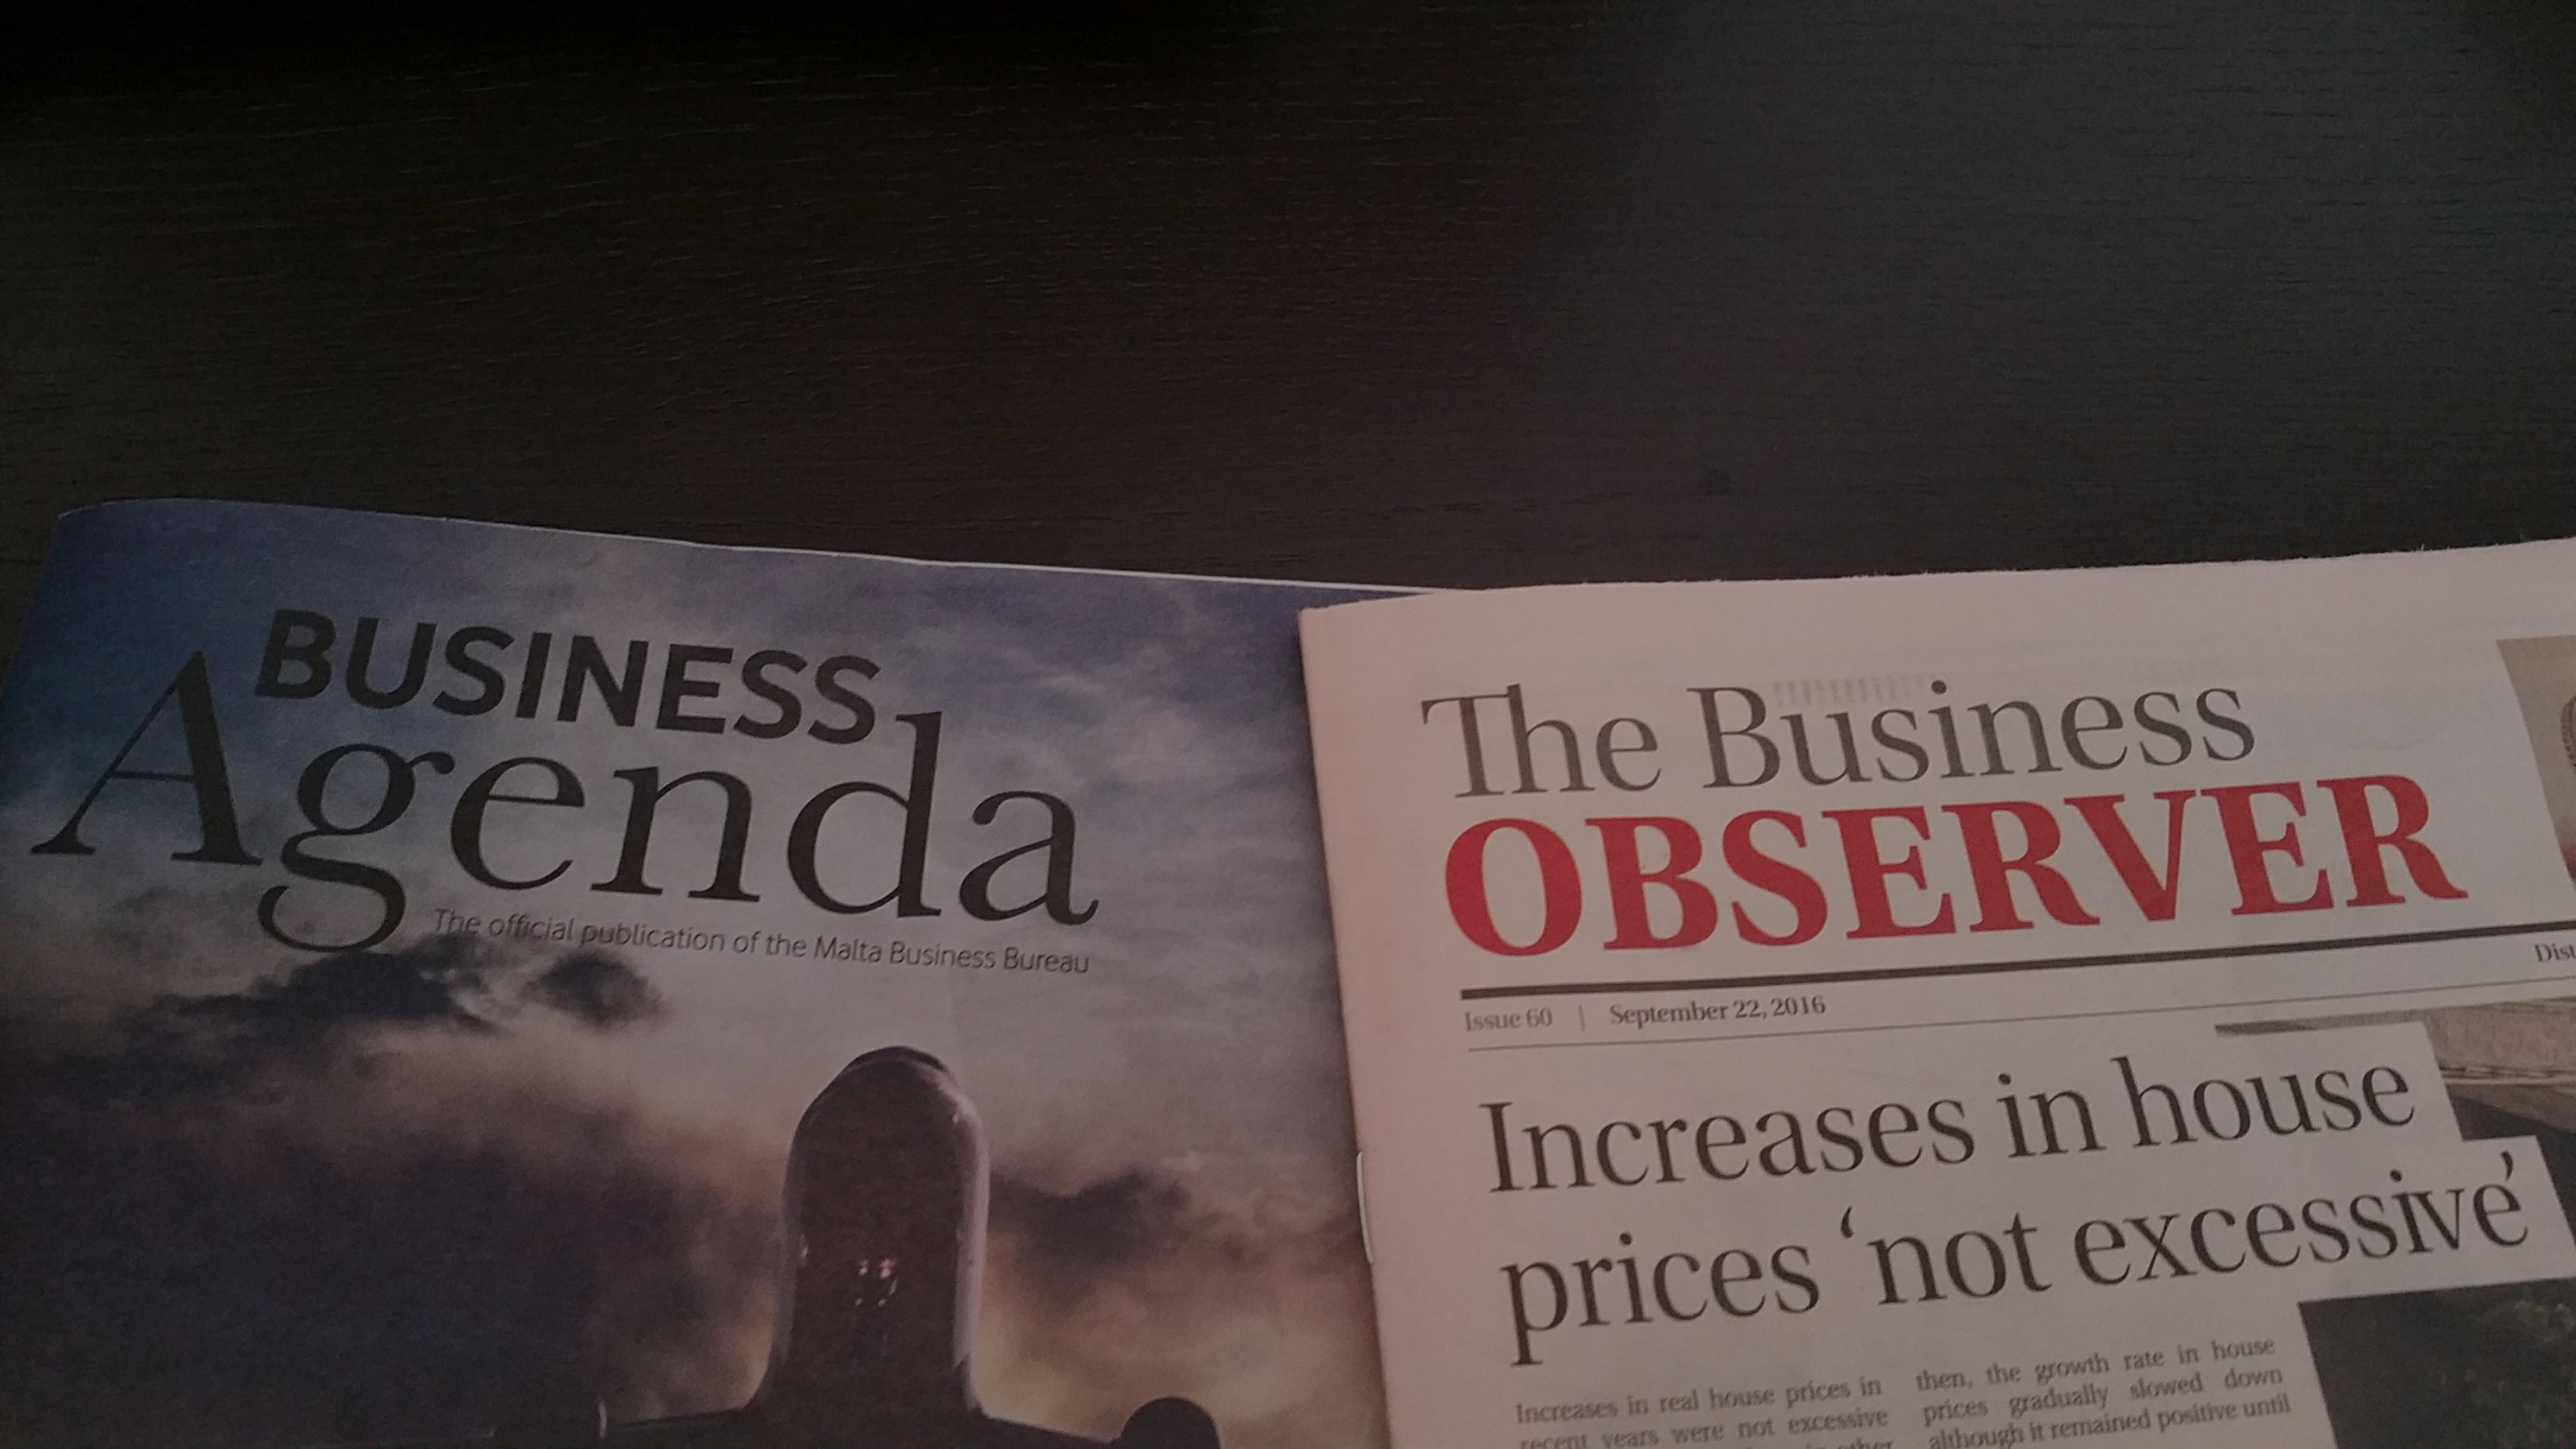 CasaSoft Ltd. Featured on the Business Agenda and The Business Observer